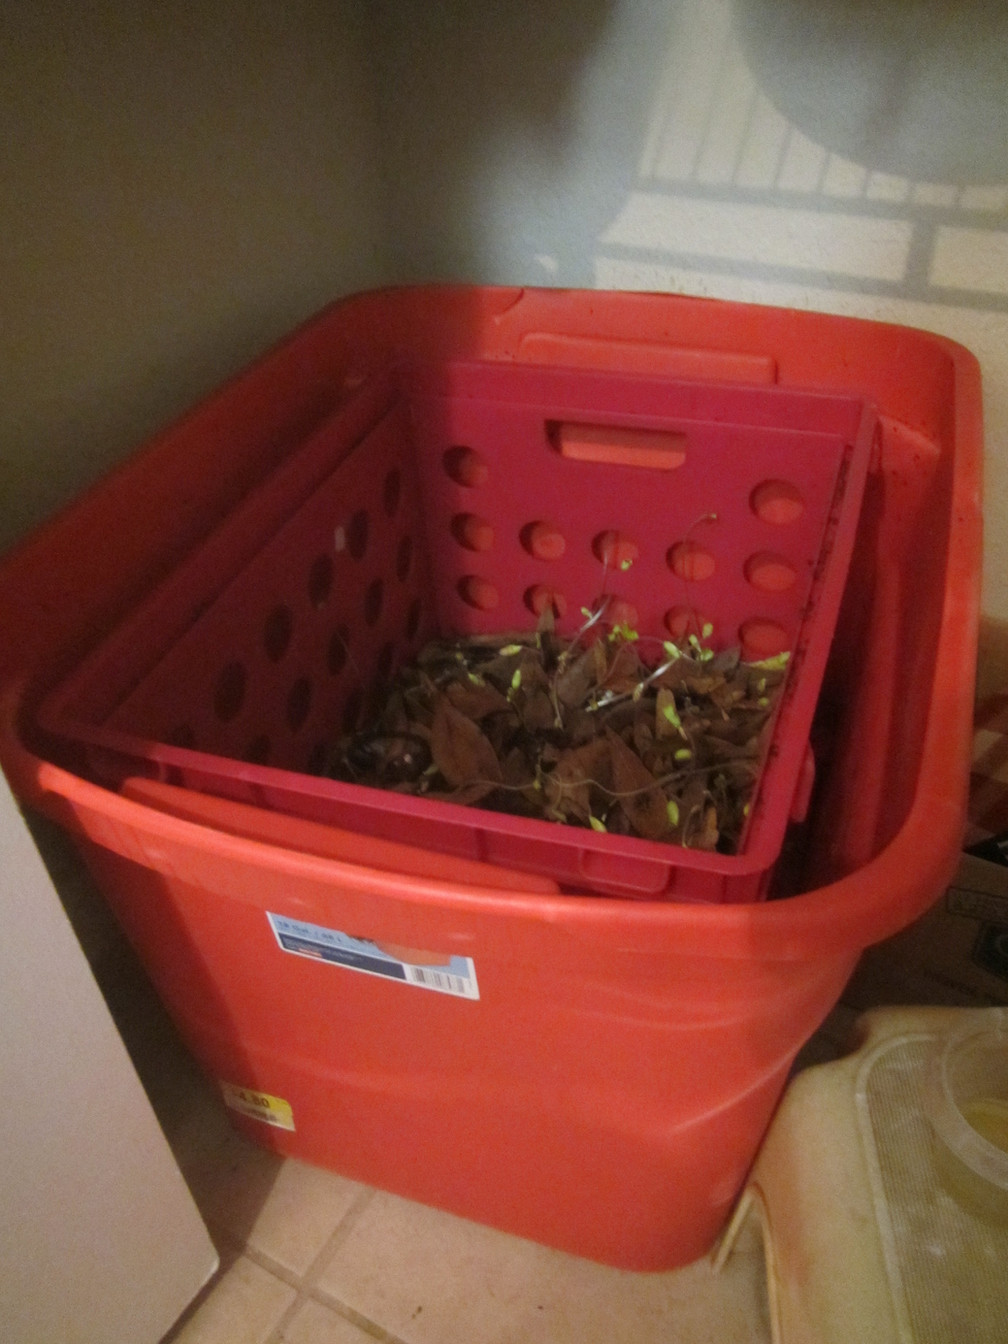 Apartment Composting: Step by Step Instructions